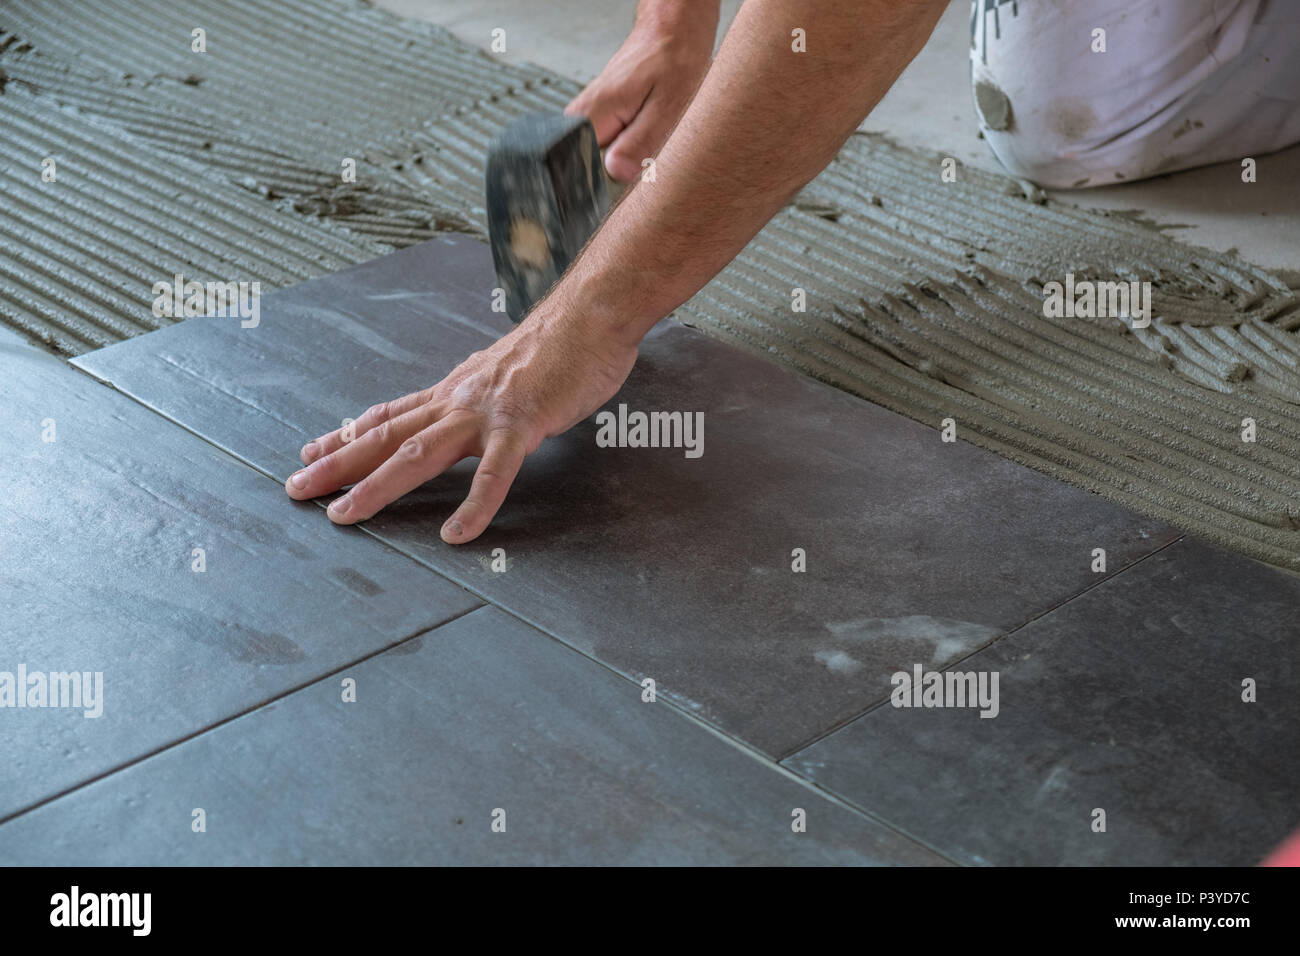 https www alamy com worker placing ceramic floor tiles on adhesive surface leveling with rubber hammer image208971488 html